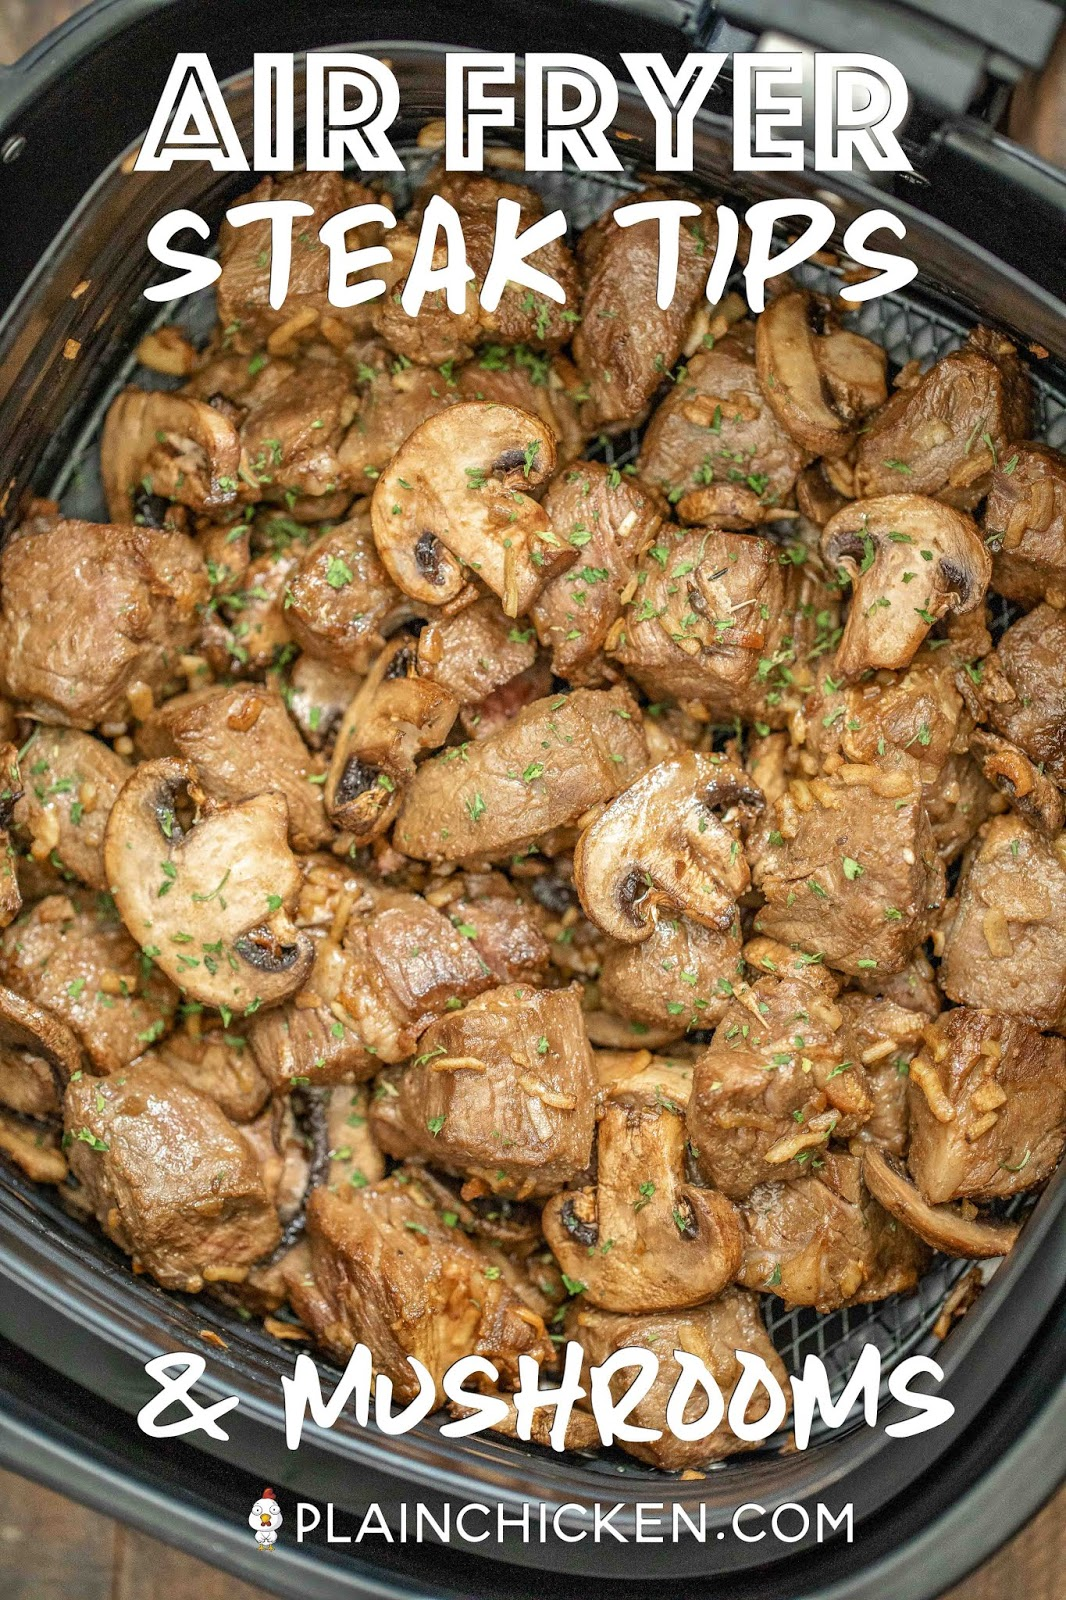 cooked steak tips and mushrooms in air fryer basket